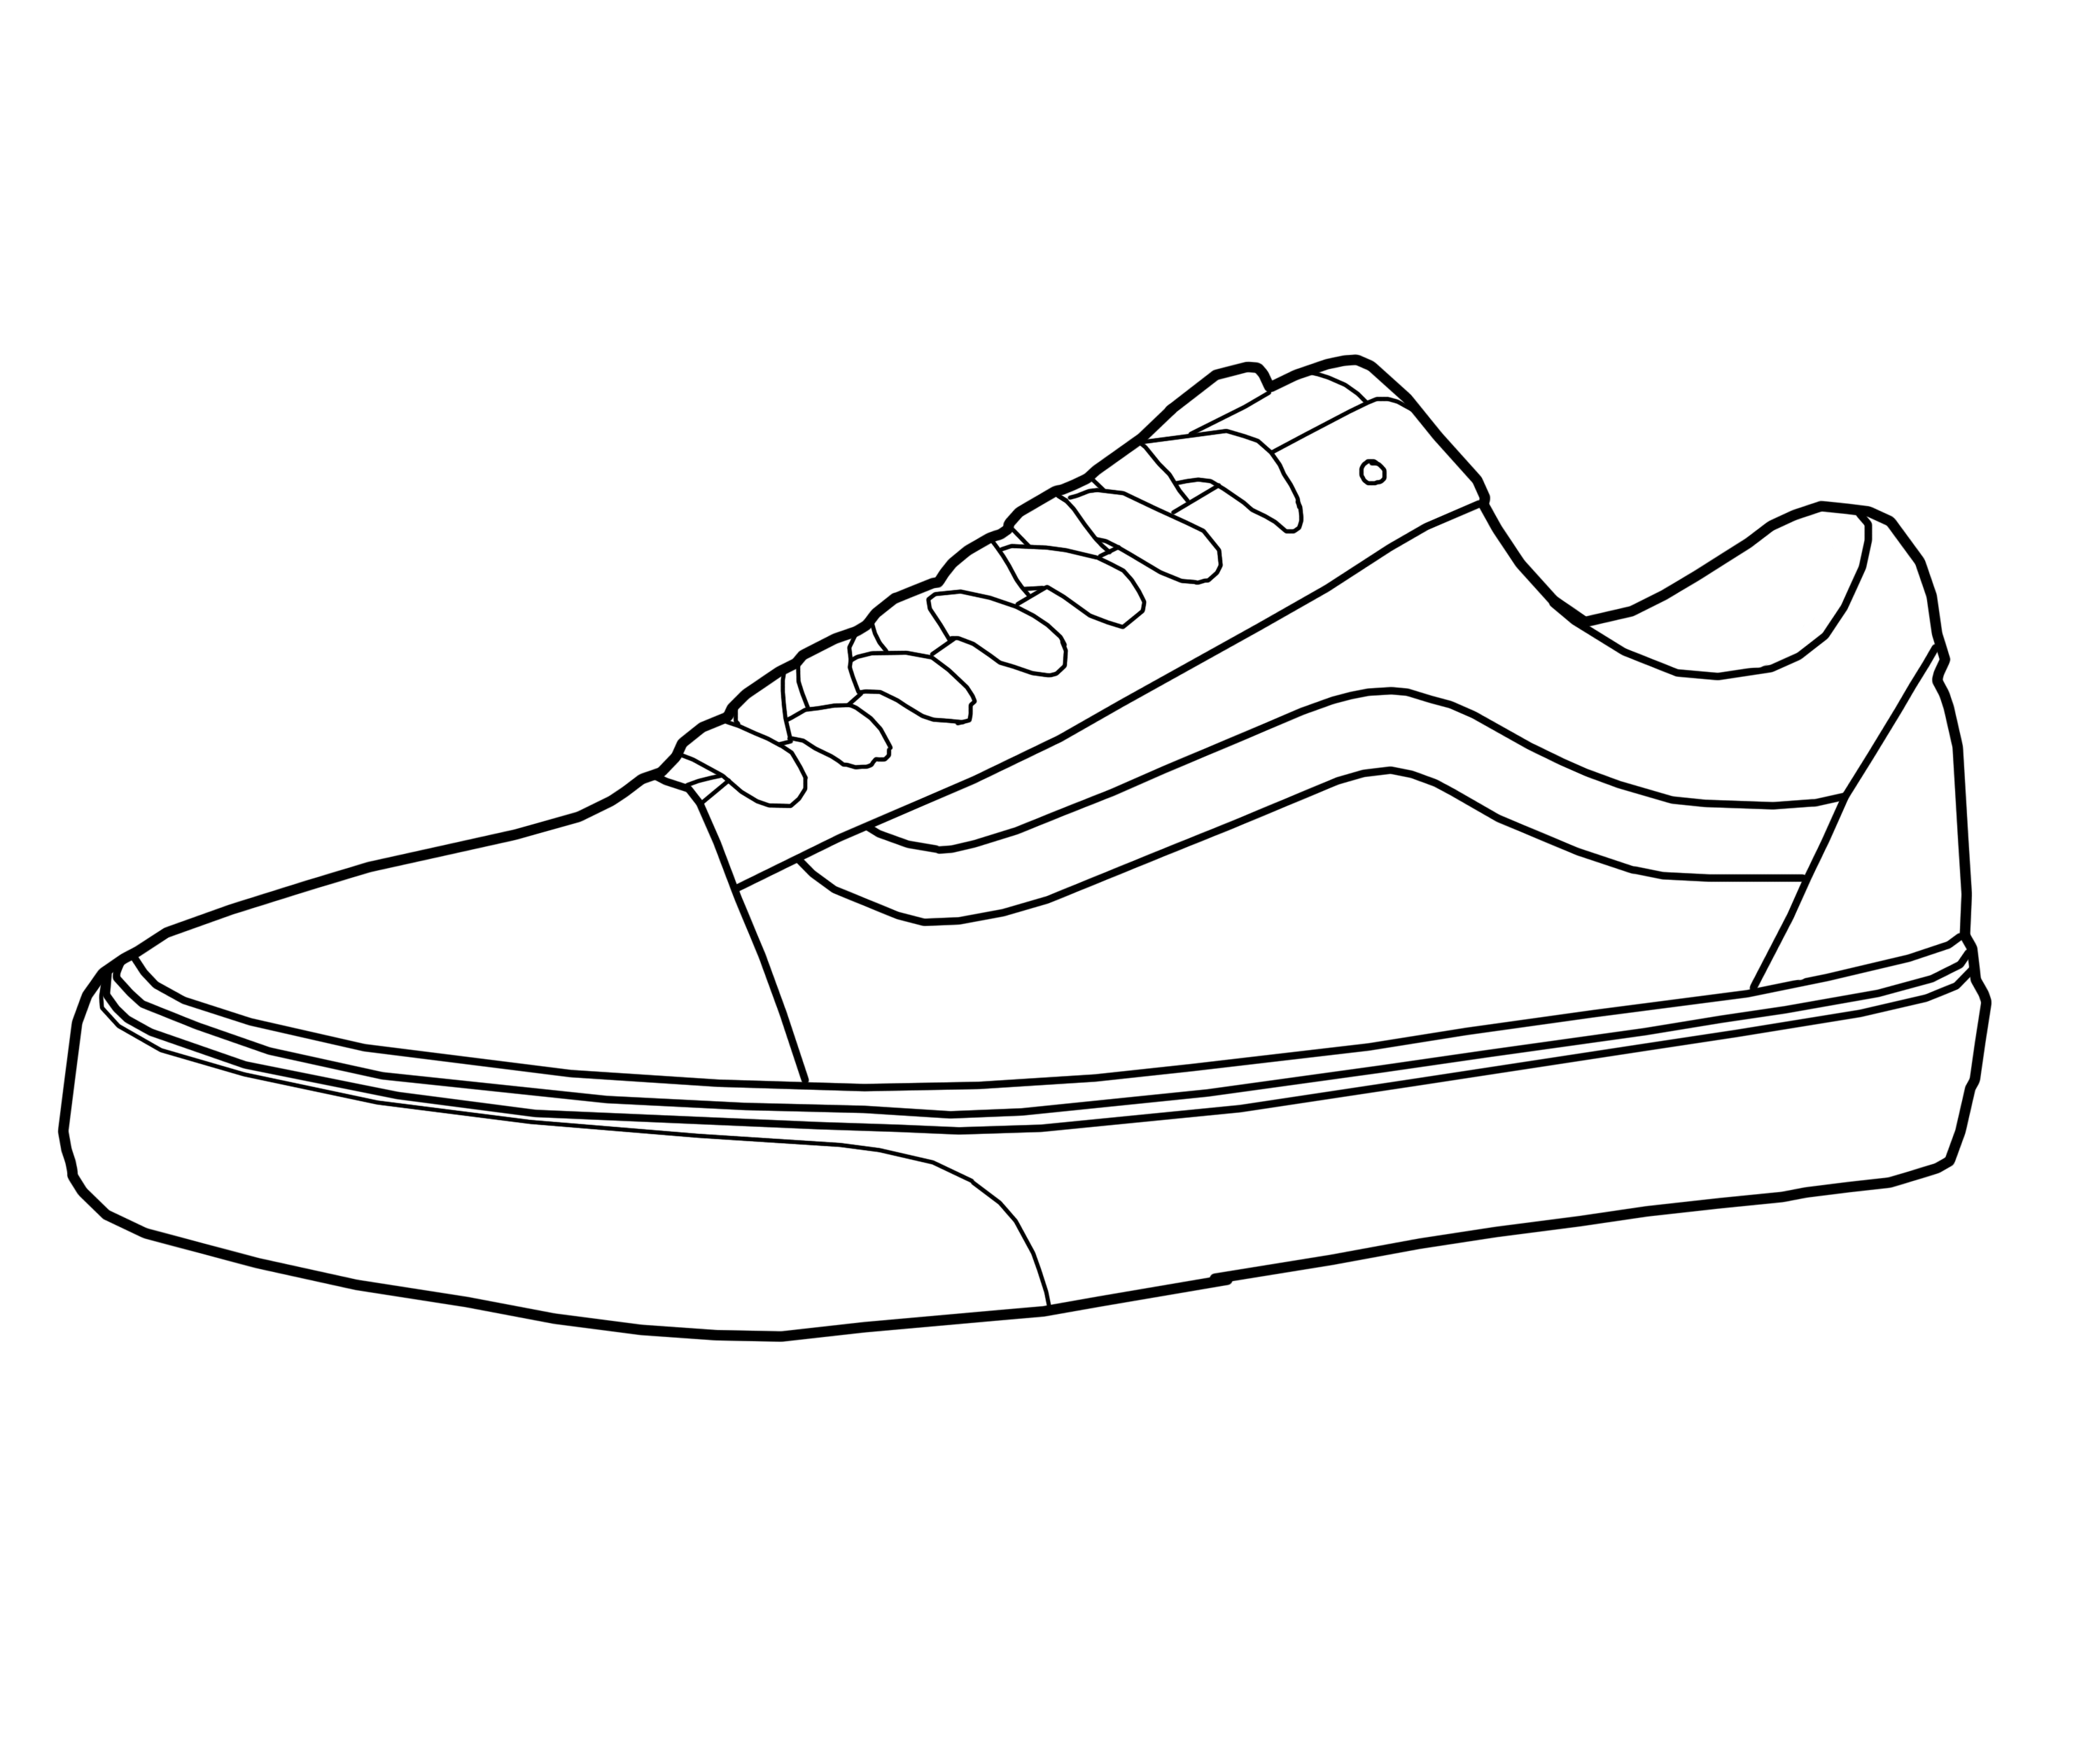 Drawn vans easy #12